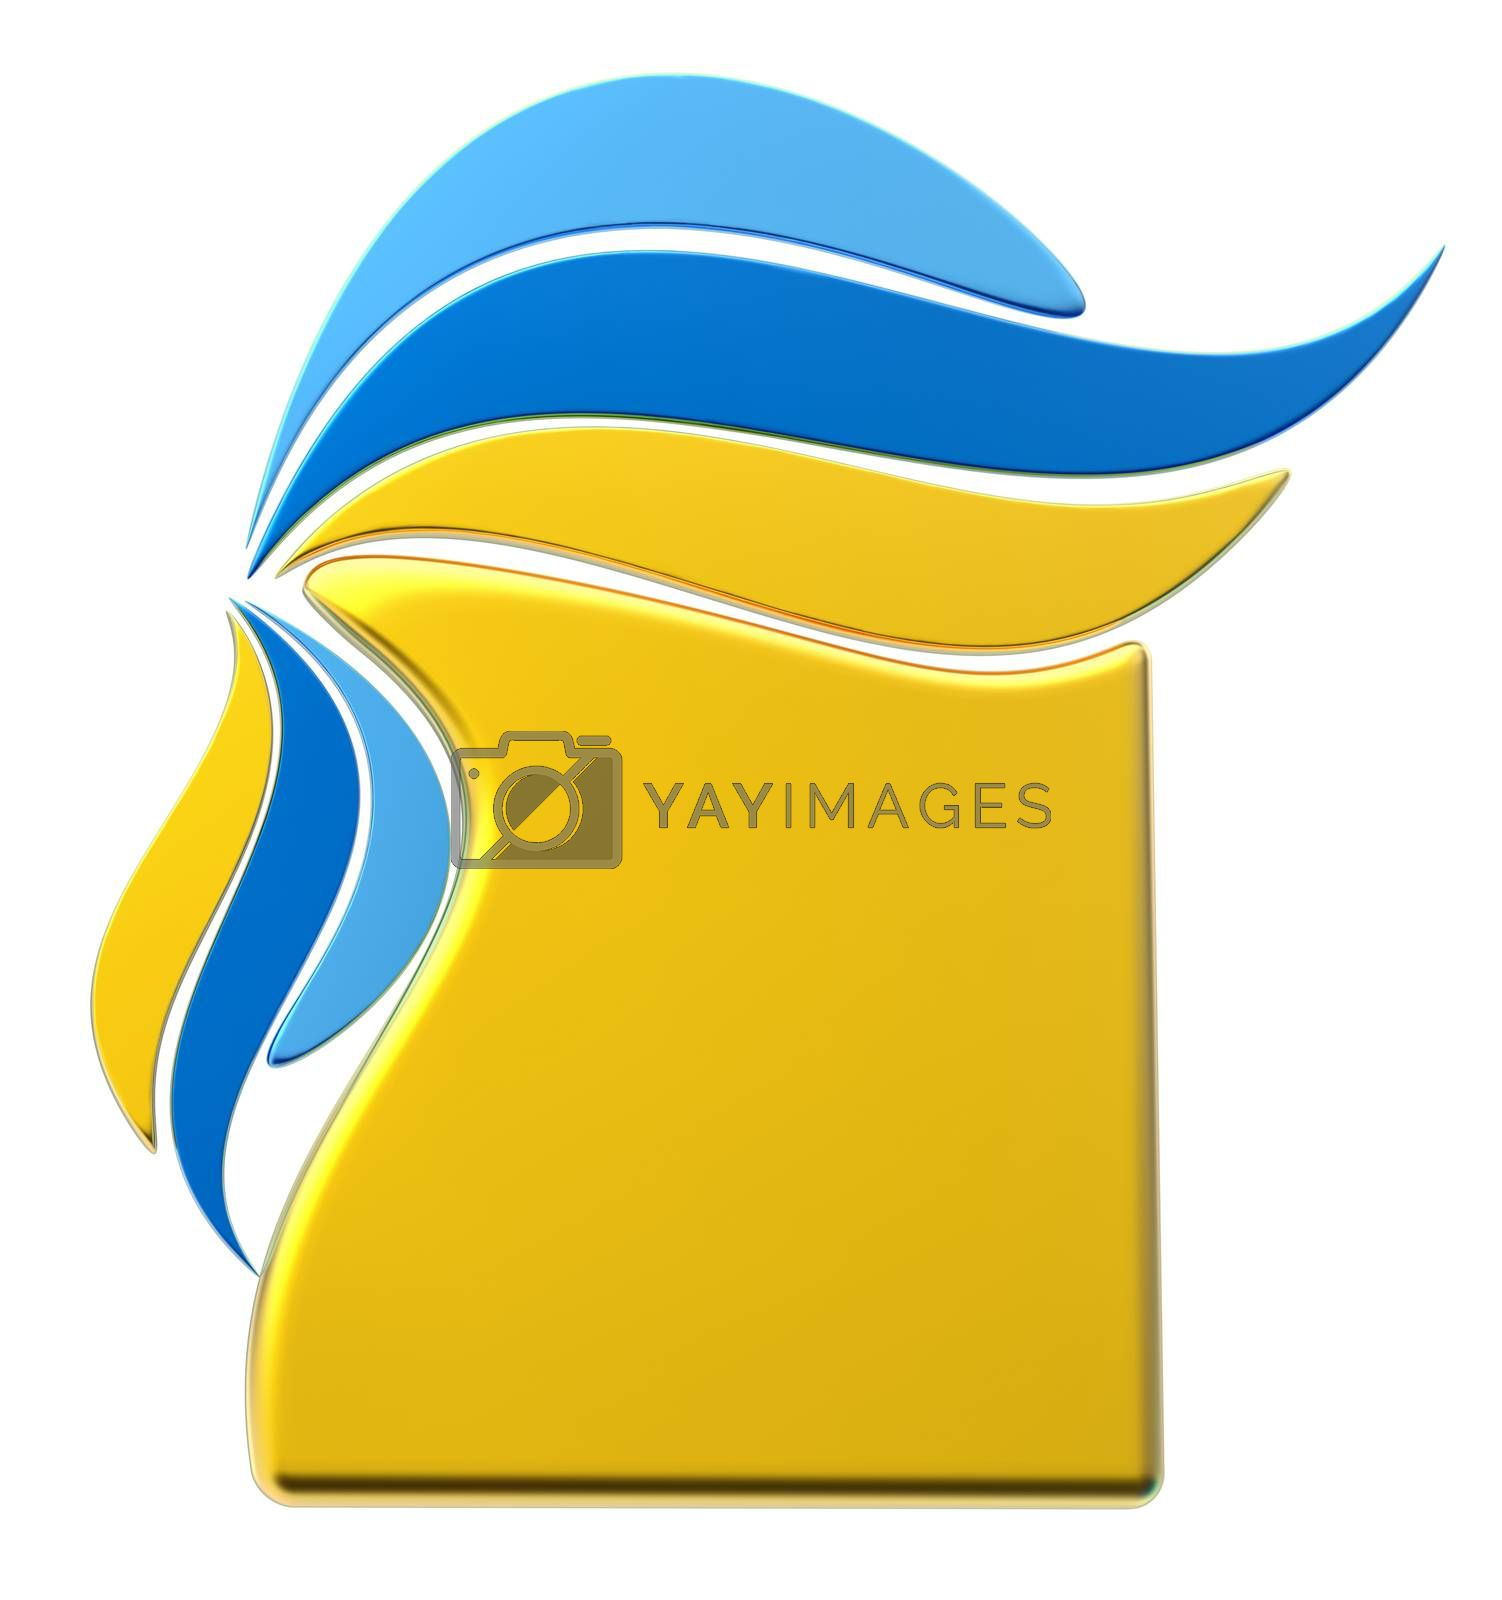 yellow and blue form with stylized shapes